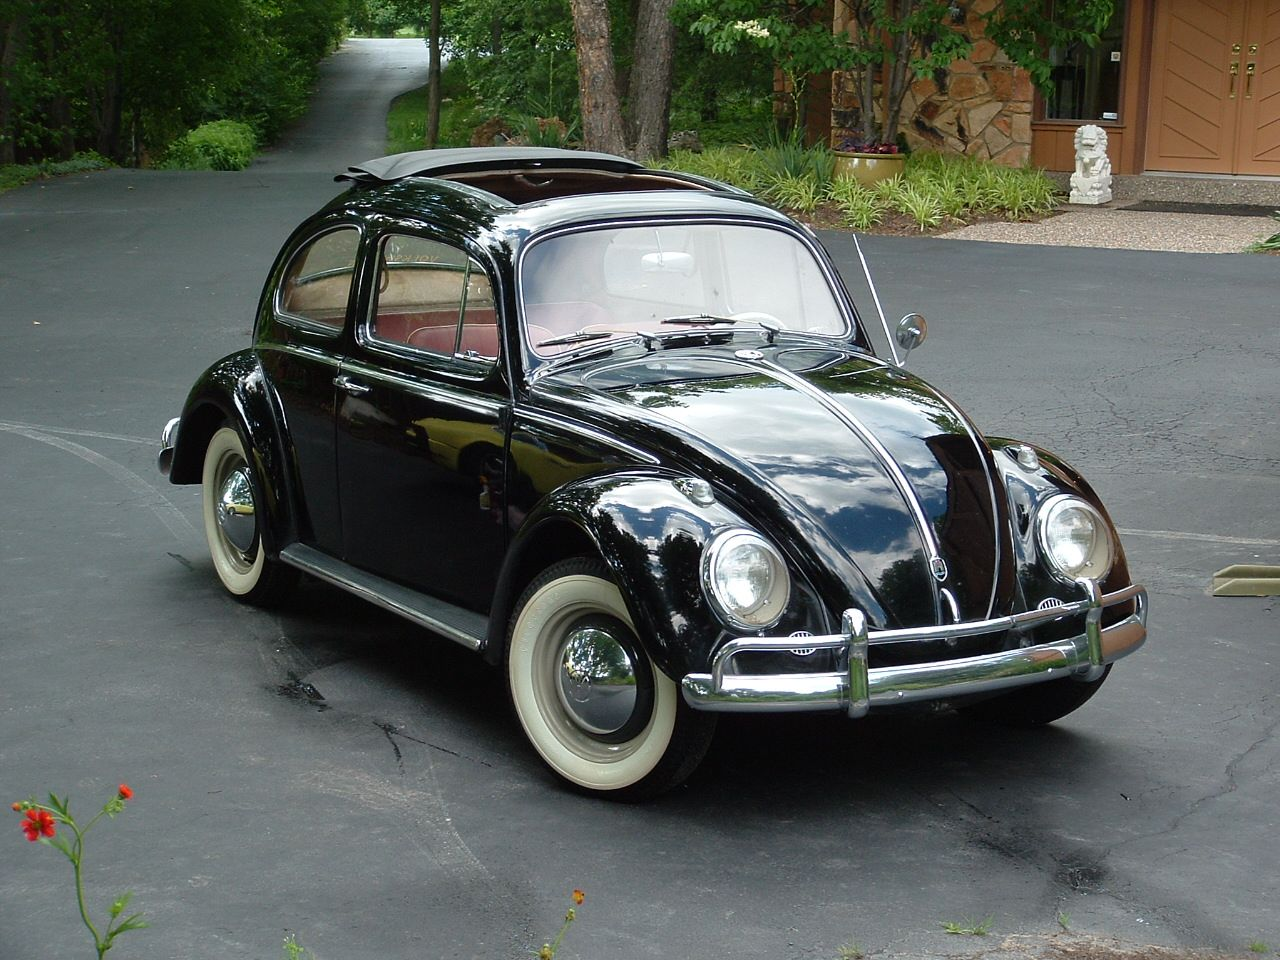 1949 Volkswagen Beetle Maintenance/restoration of old/vintage ...